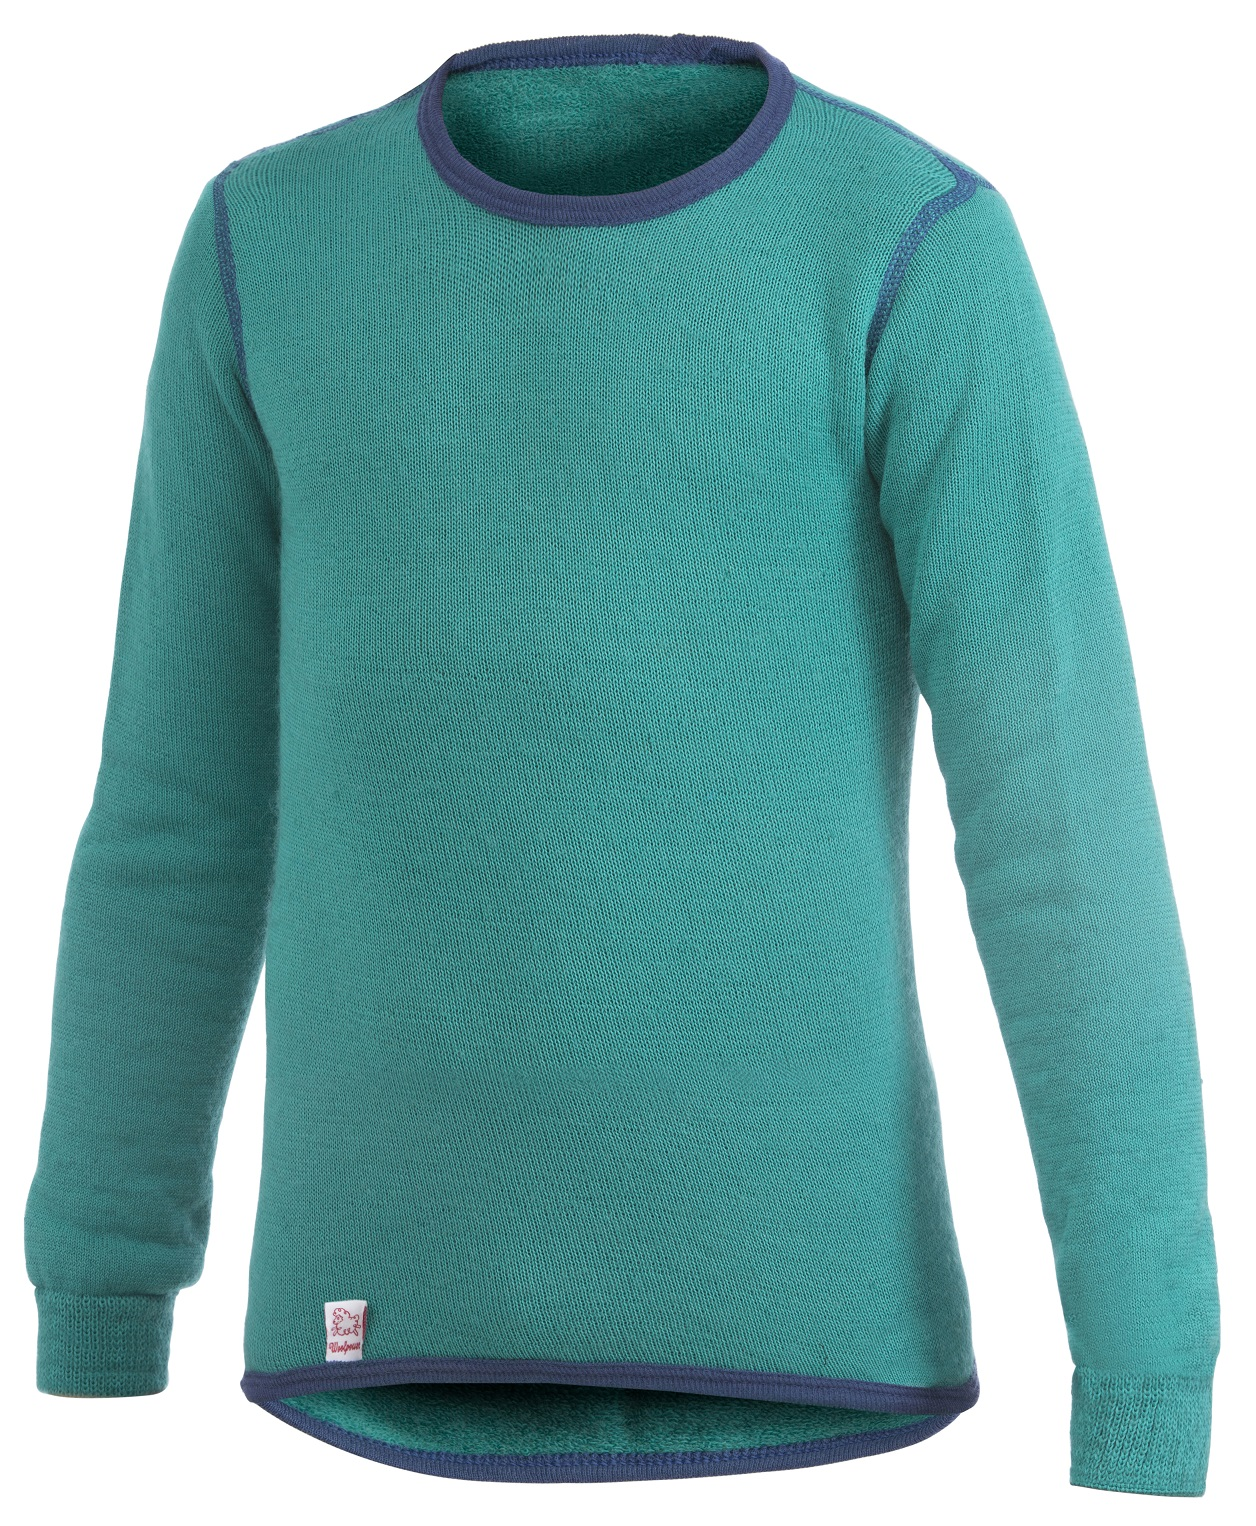 "Woolpower ""200 Kids Crewneck"" - turtle green"